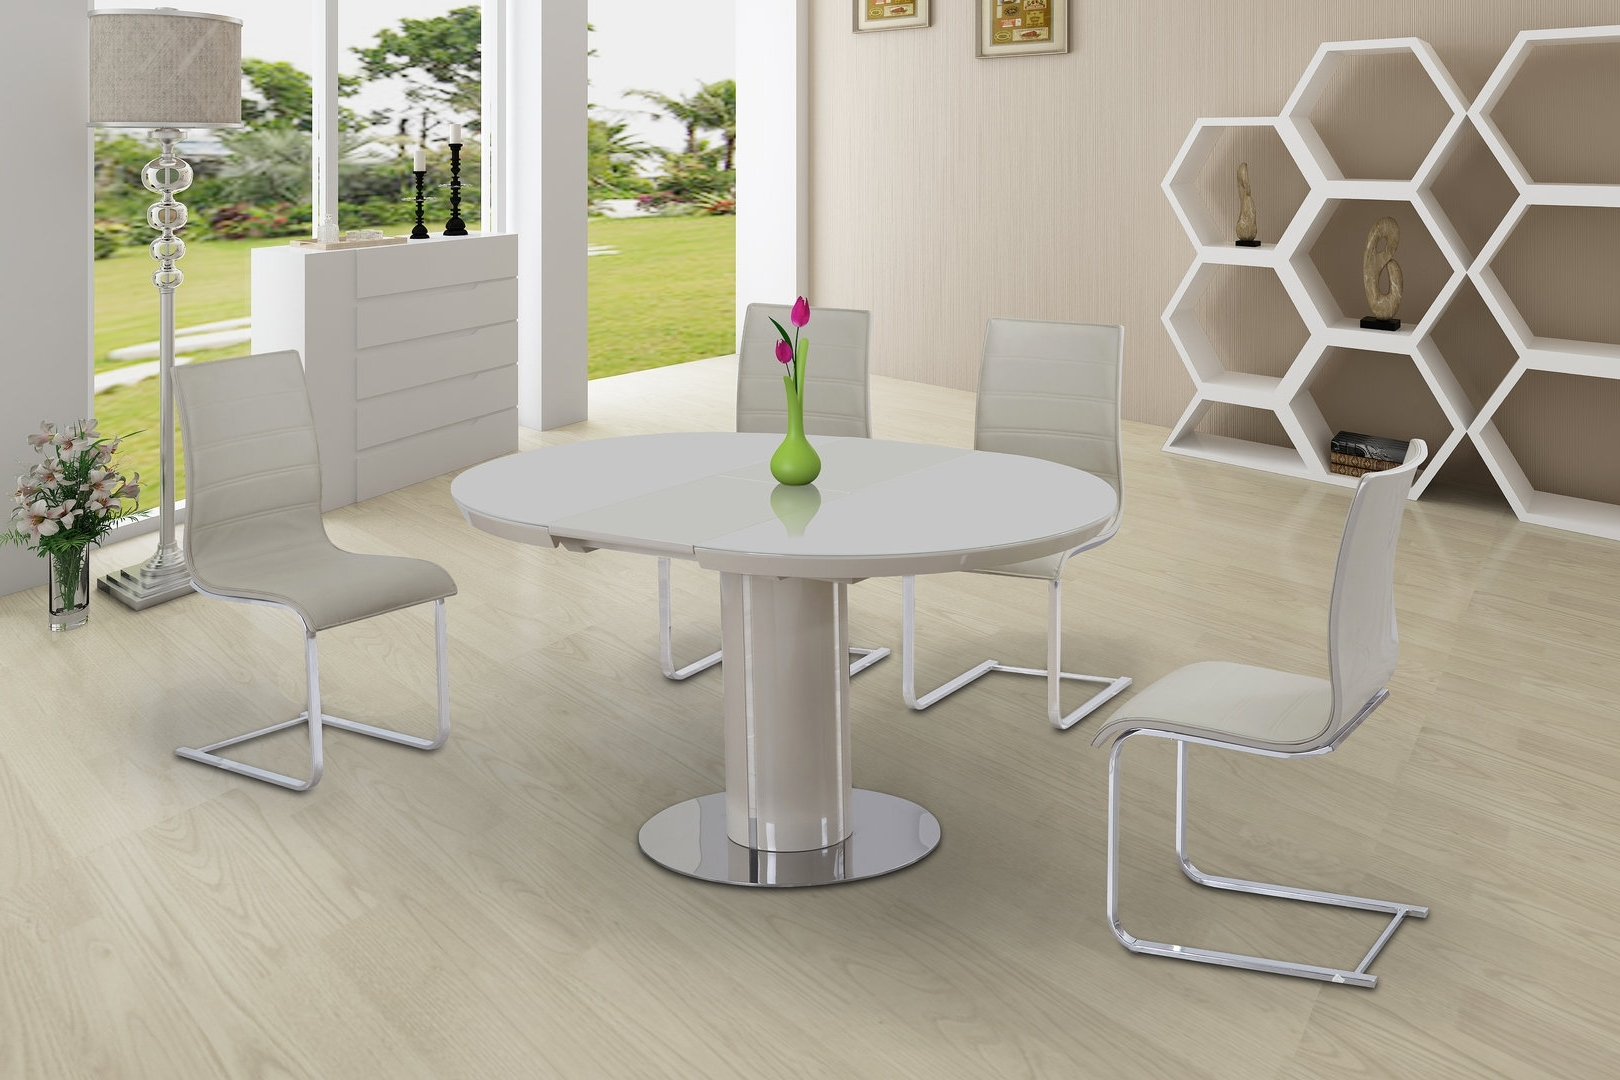 Gloss Dining Tables Throughout Most Recently Released Round Cream Glass High Gloss Dining Table & 6 Chairs – Homegenies (View 7 of 25)